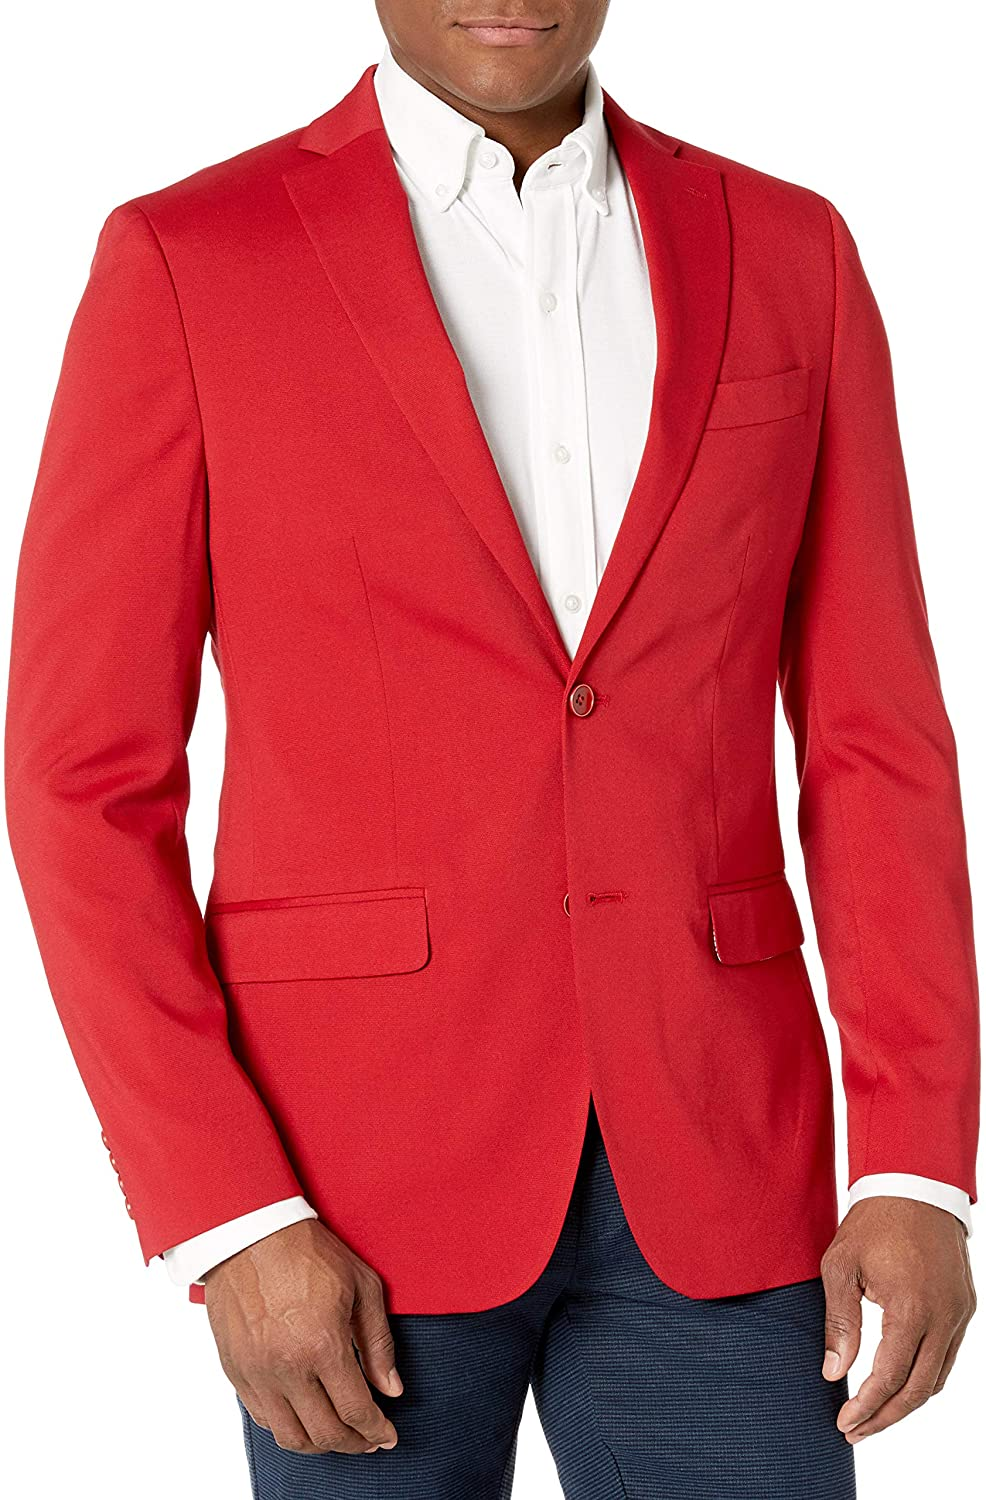 IZOD Men's Varsity Blazer, Red, 36R